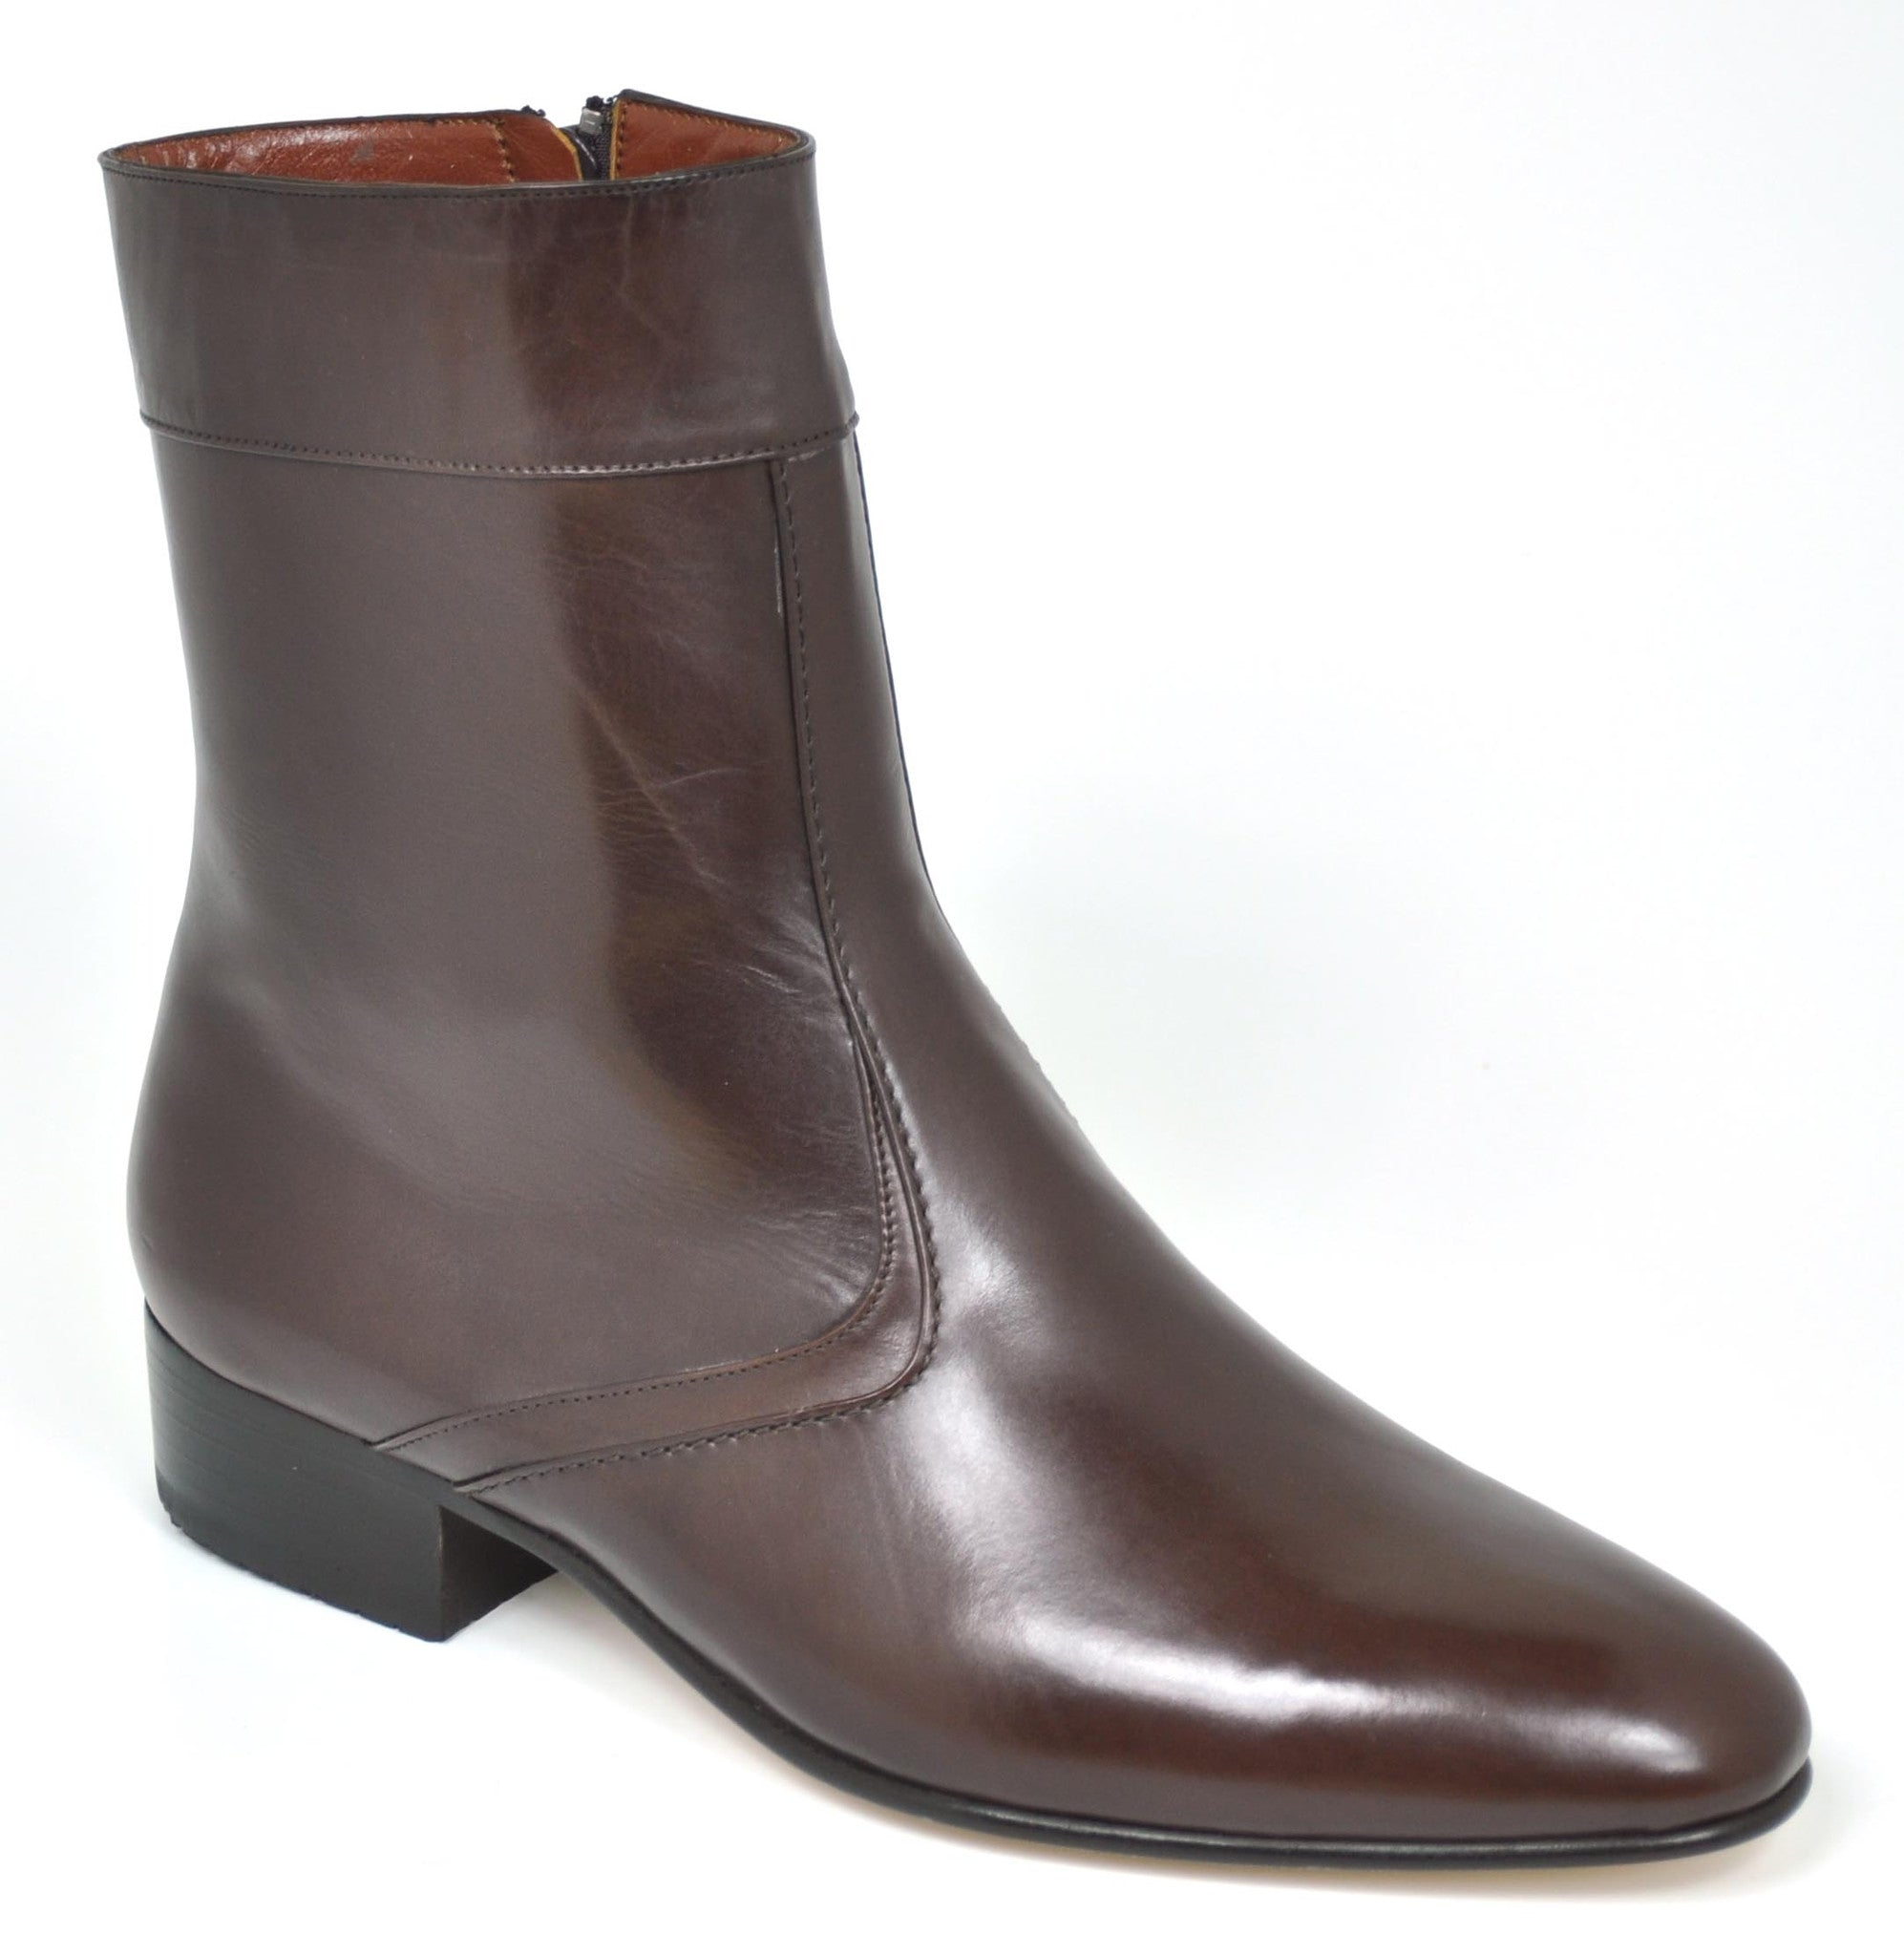 Gavel Men's Calfskin Leather Dress Boot Brown 0901